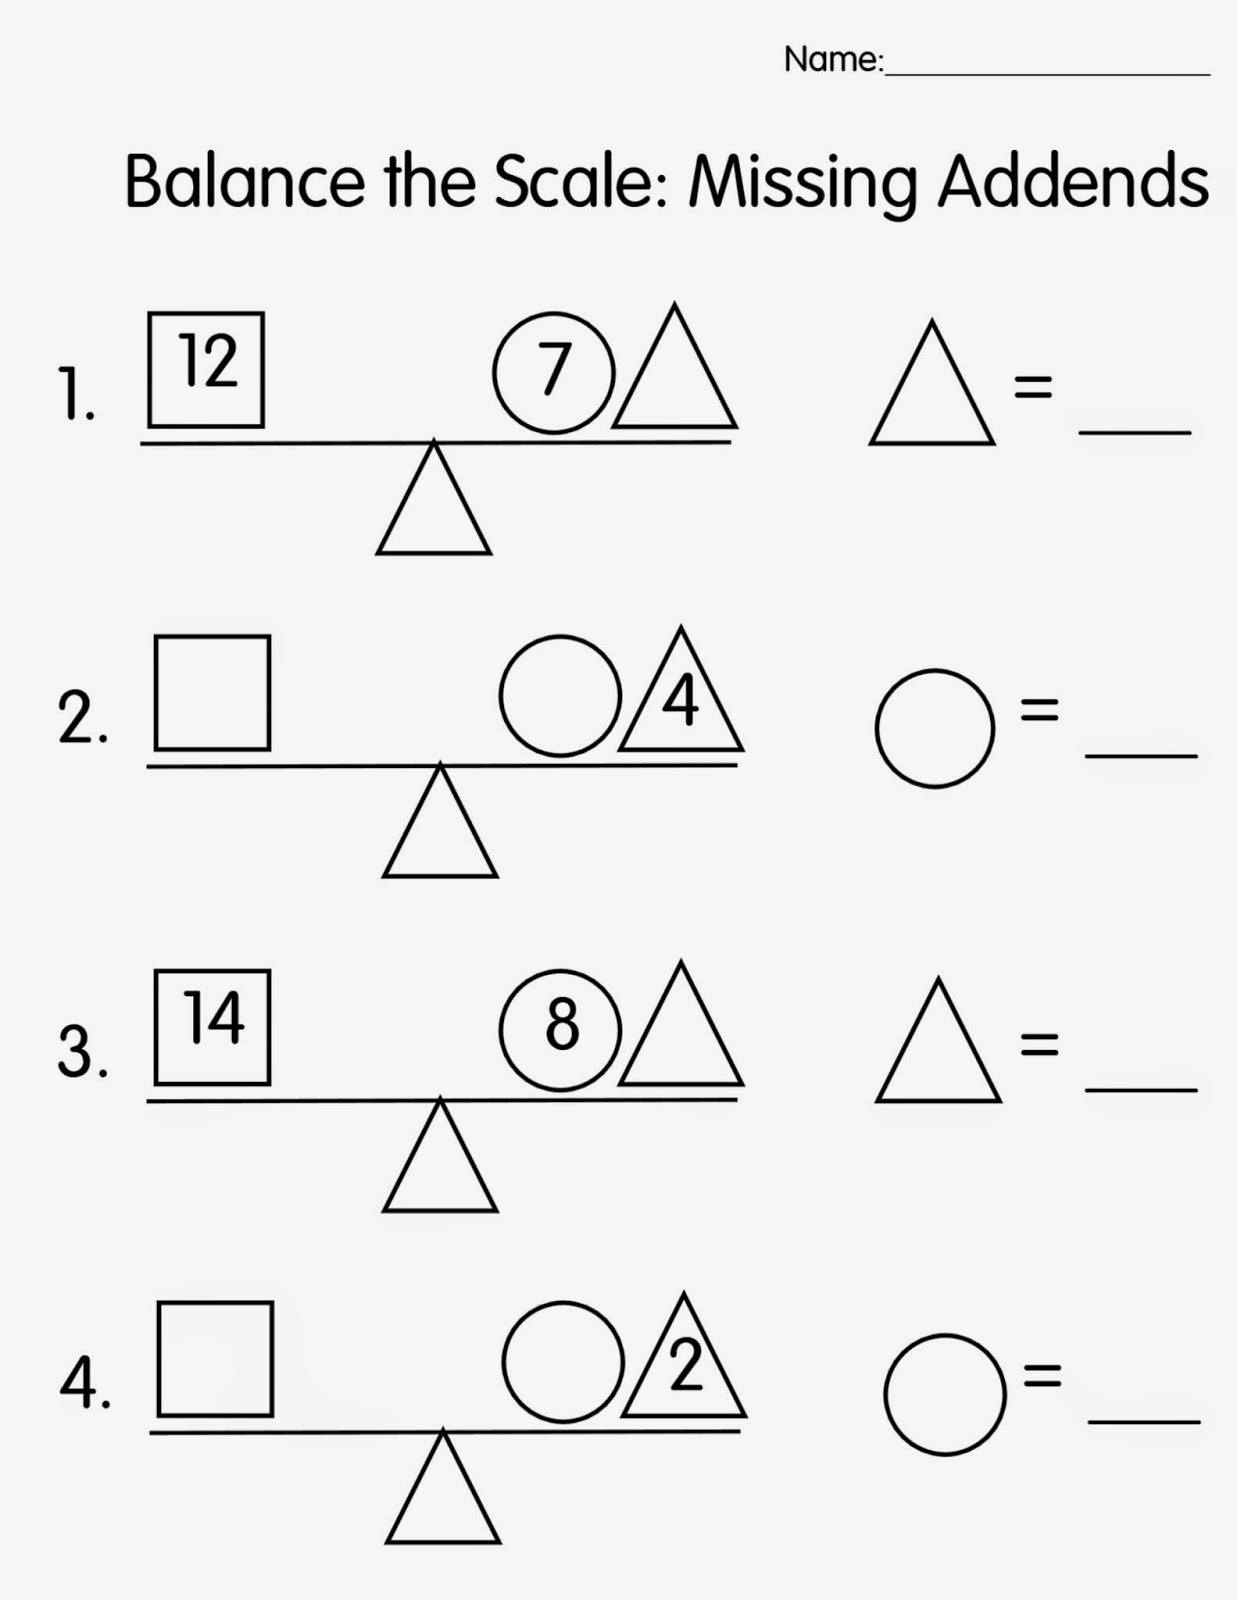 Missing Addend Worksheets First Grade Mrs T S First Grade Class Balance the Scale Missing Addends